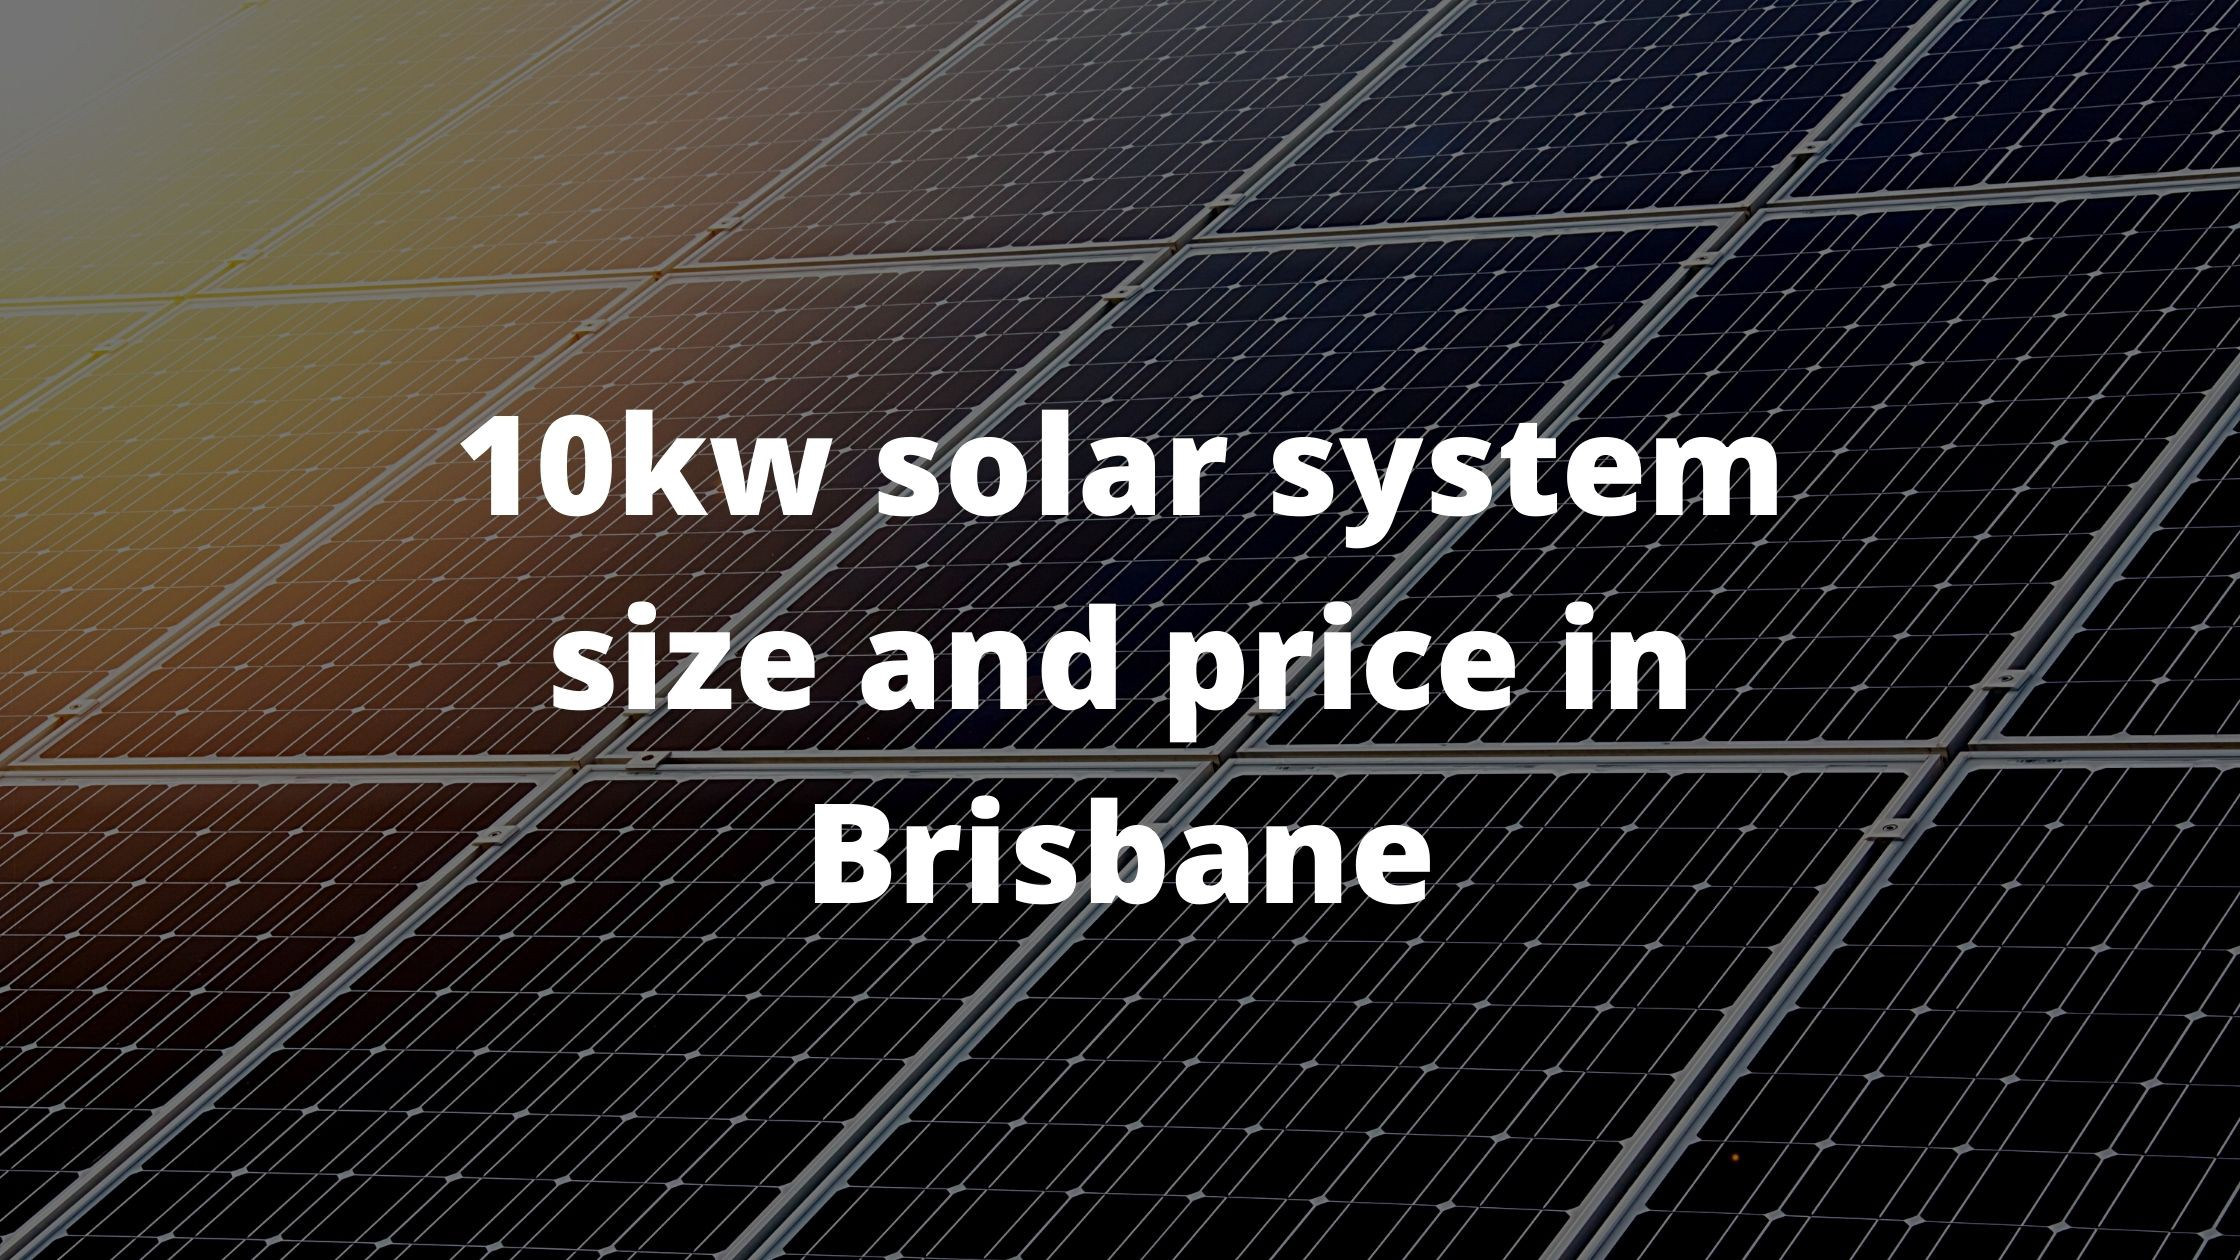 10kw Solar System Size And Price In Brisbane By Solar Power Aug 2020 Medium